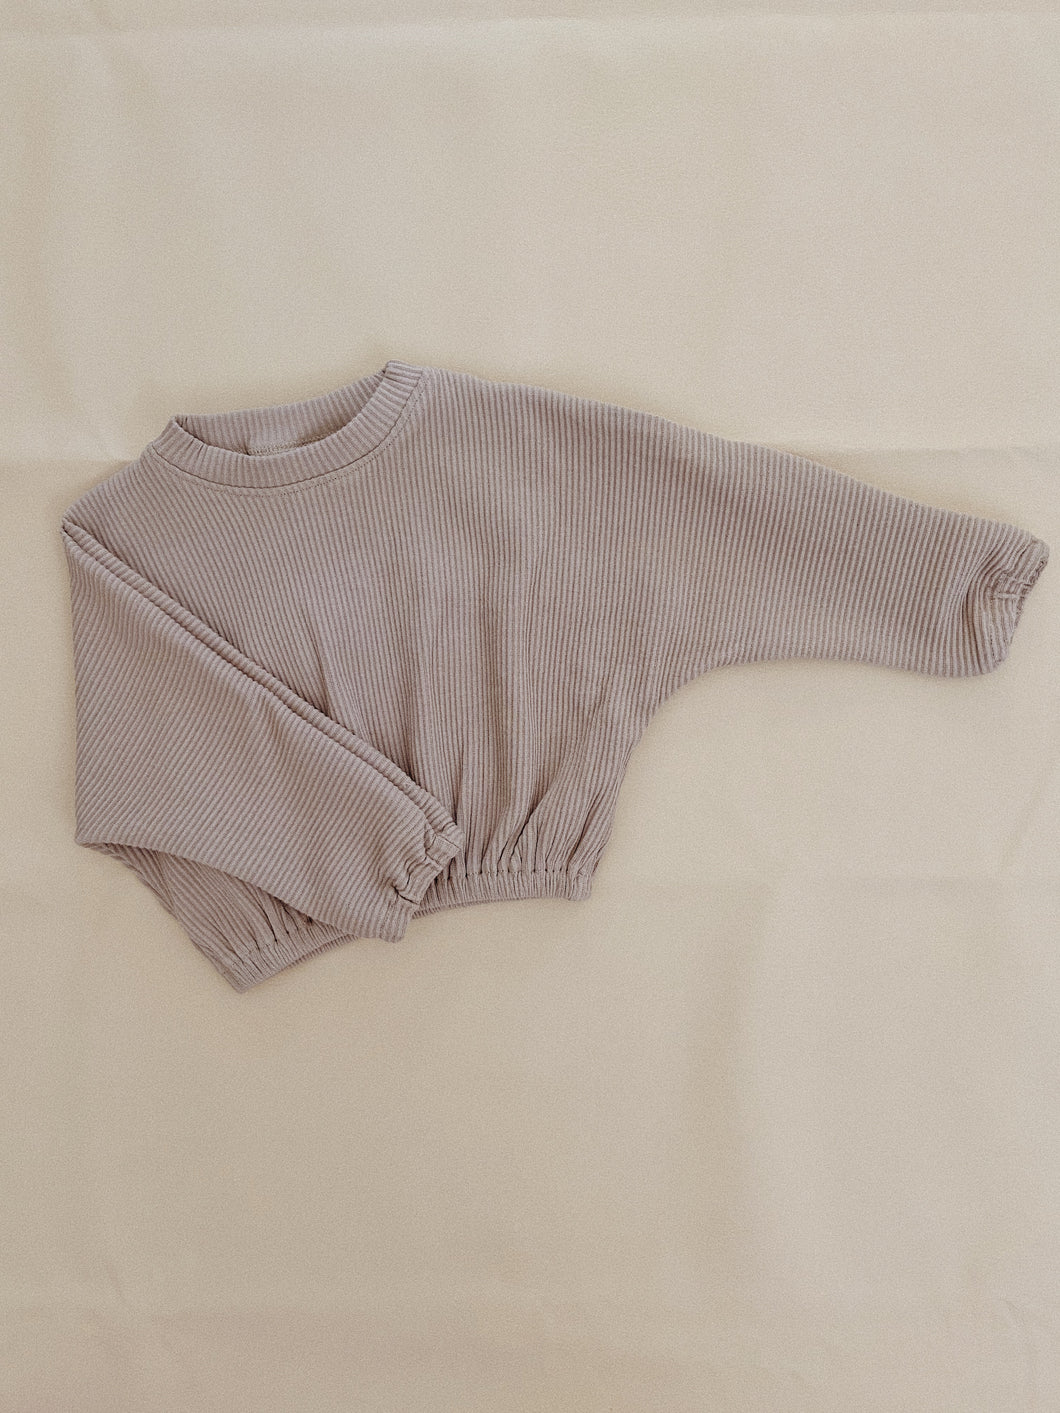 Jett Pullover - Taupe